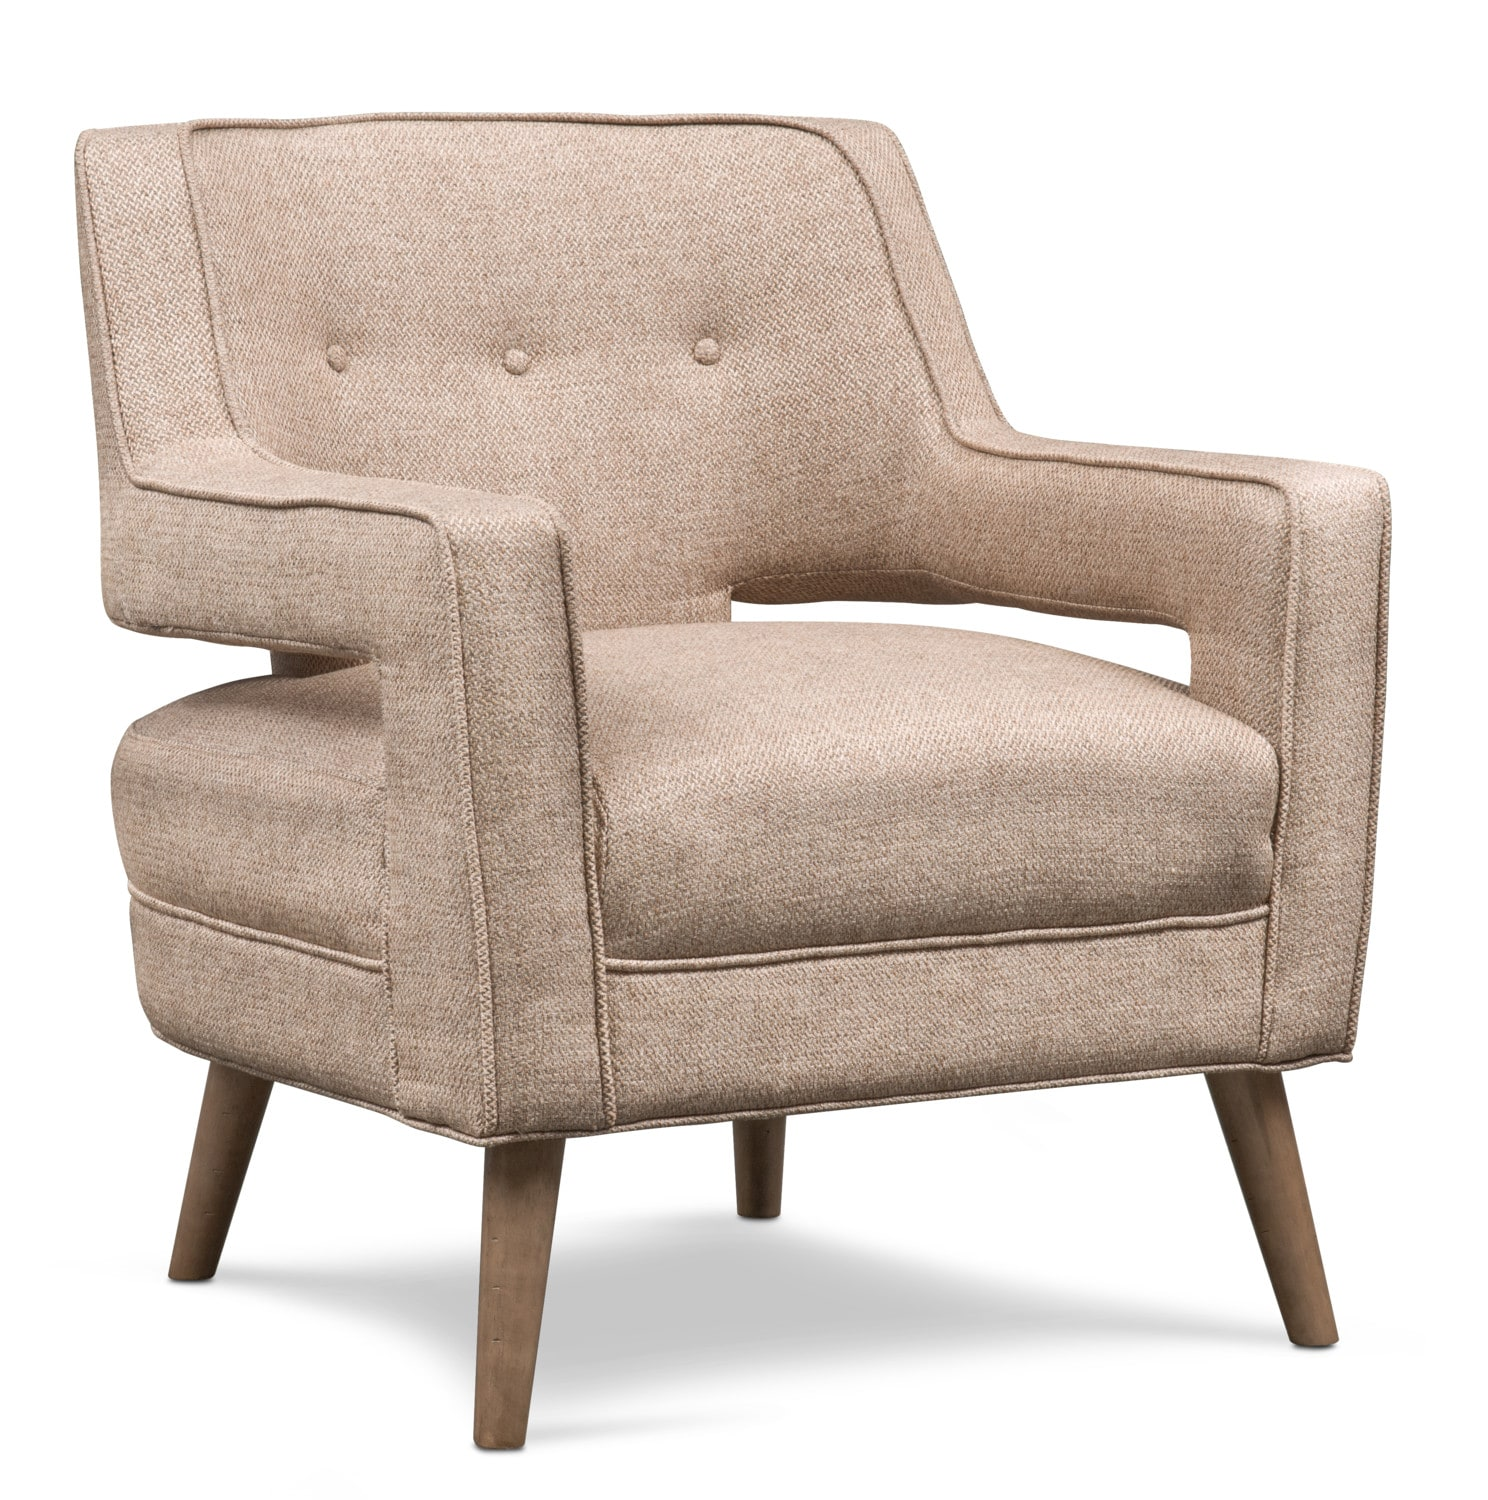 Living Room Furniture - Shelby Accent Chair - Beige